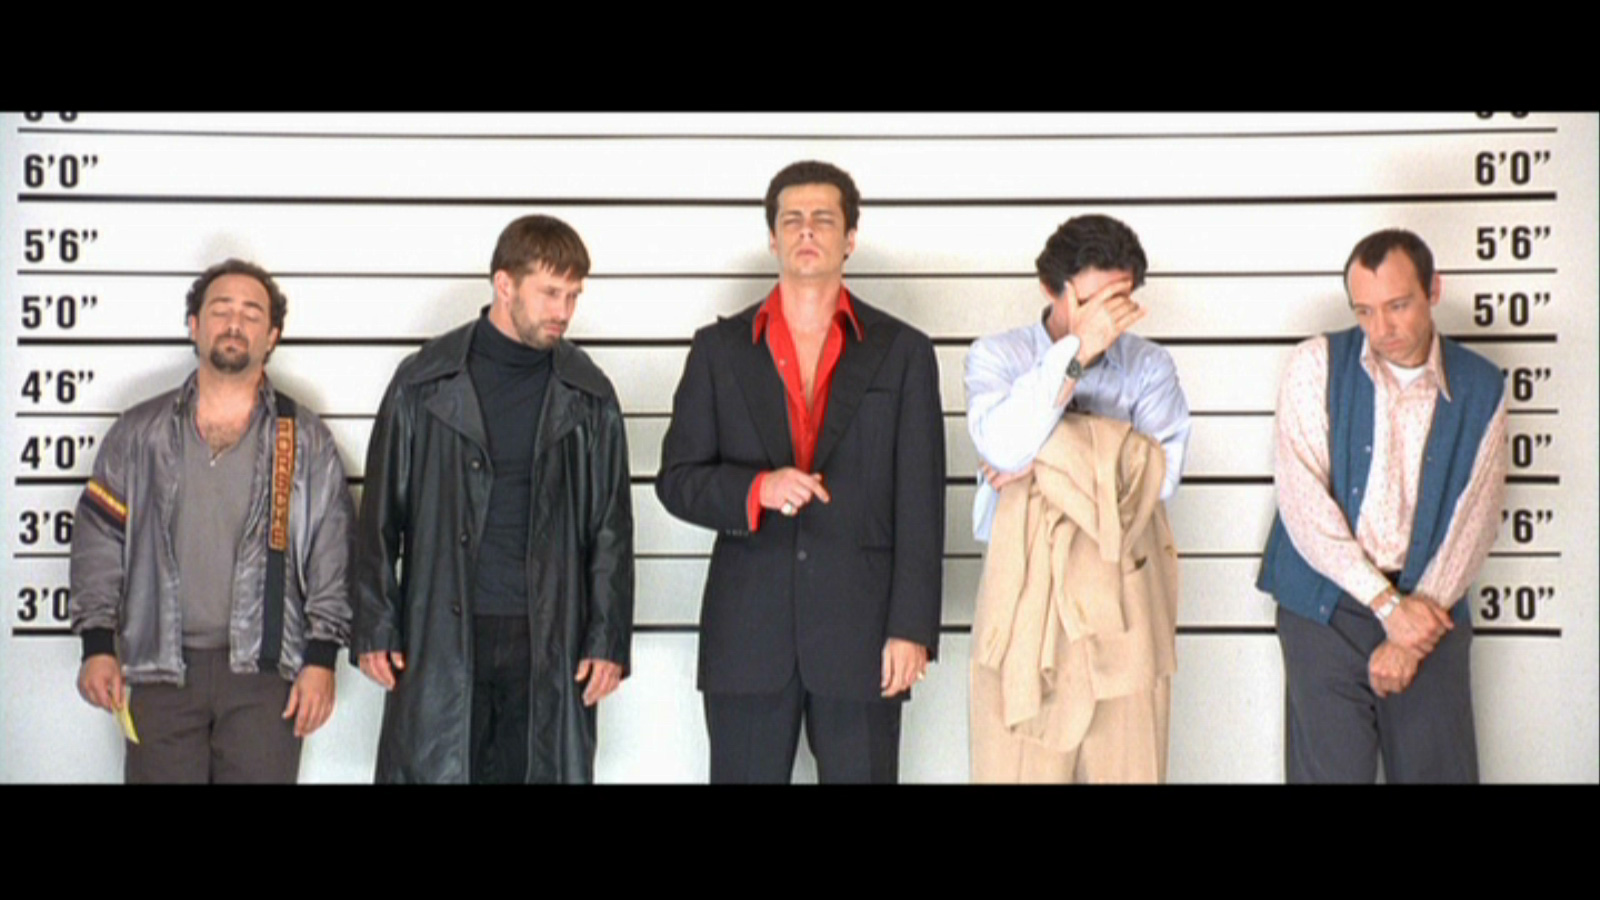 The Usual Suspects. Duh.